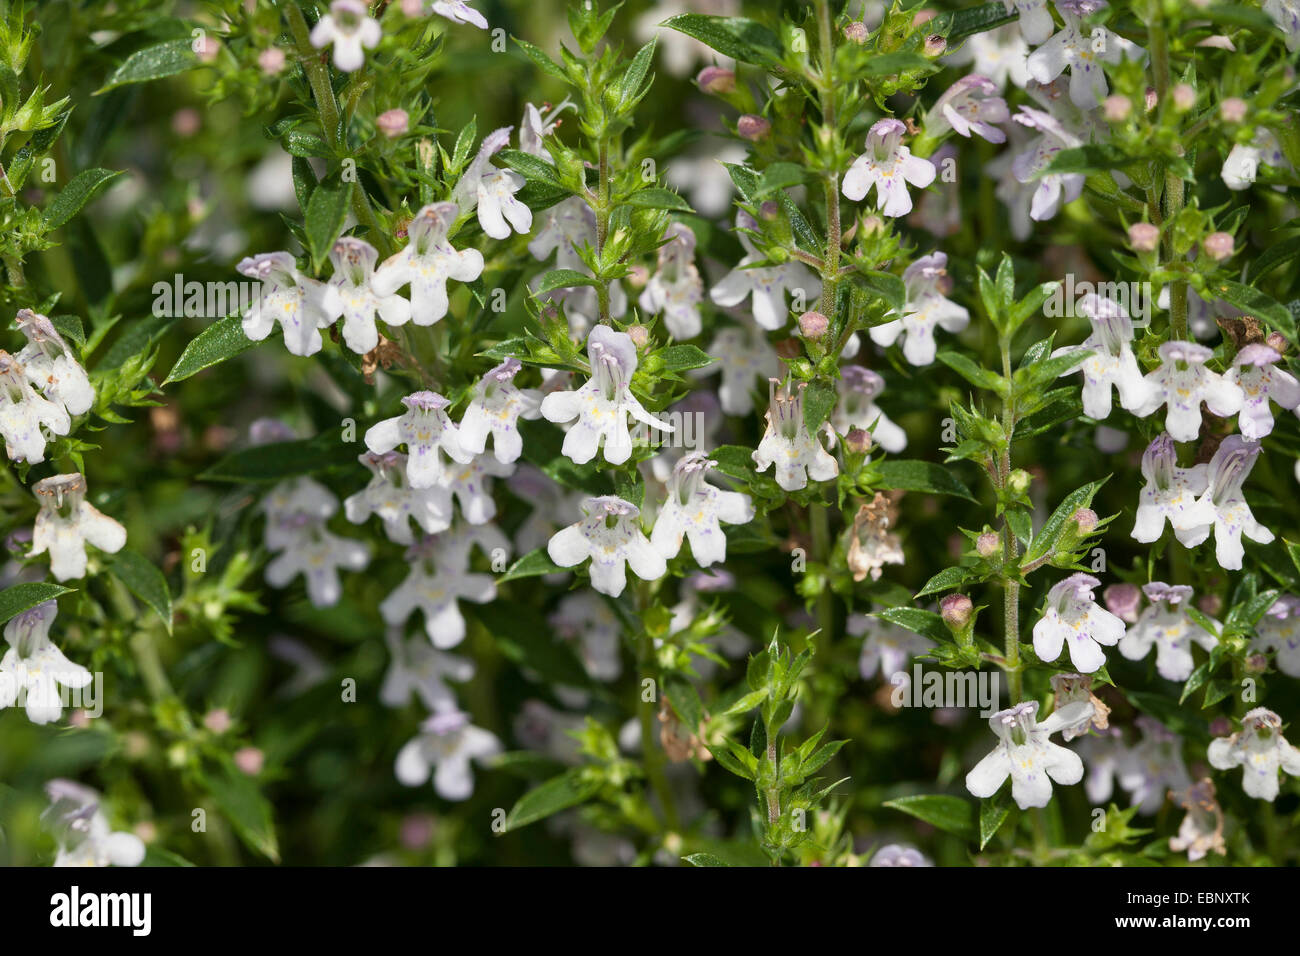 winter savory satureja montana blooming stock photo royalty free image 76084755 alamy. Black Bedroom Furniture Sets. Home Design Ideas